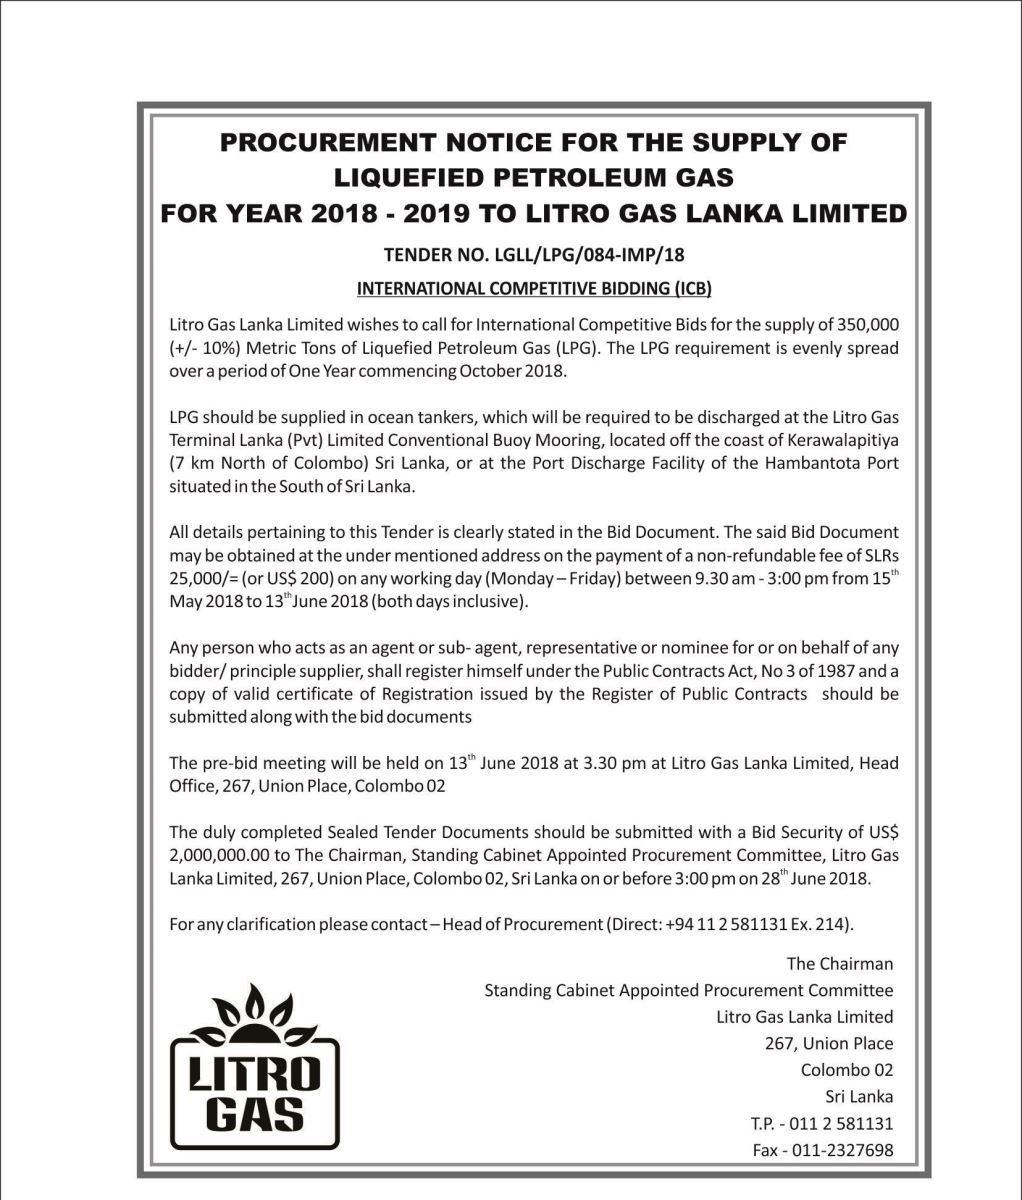 Procurement Notice Of Litro Gas Lanka Limited || The Embassy Of Sri inside 18 August 1987 In Sri Lanka